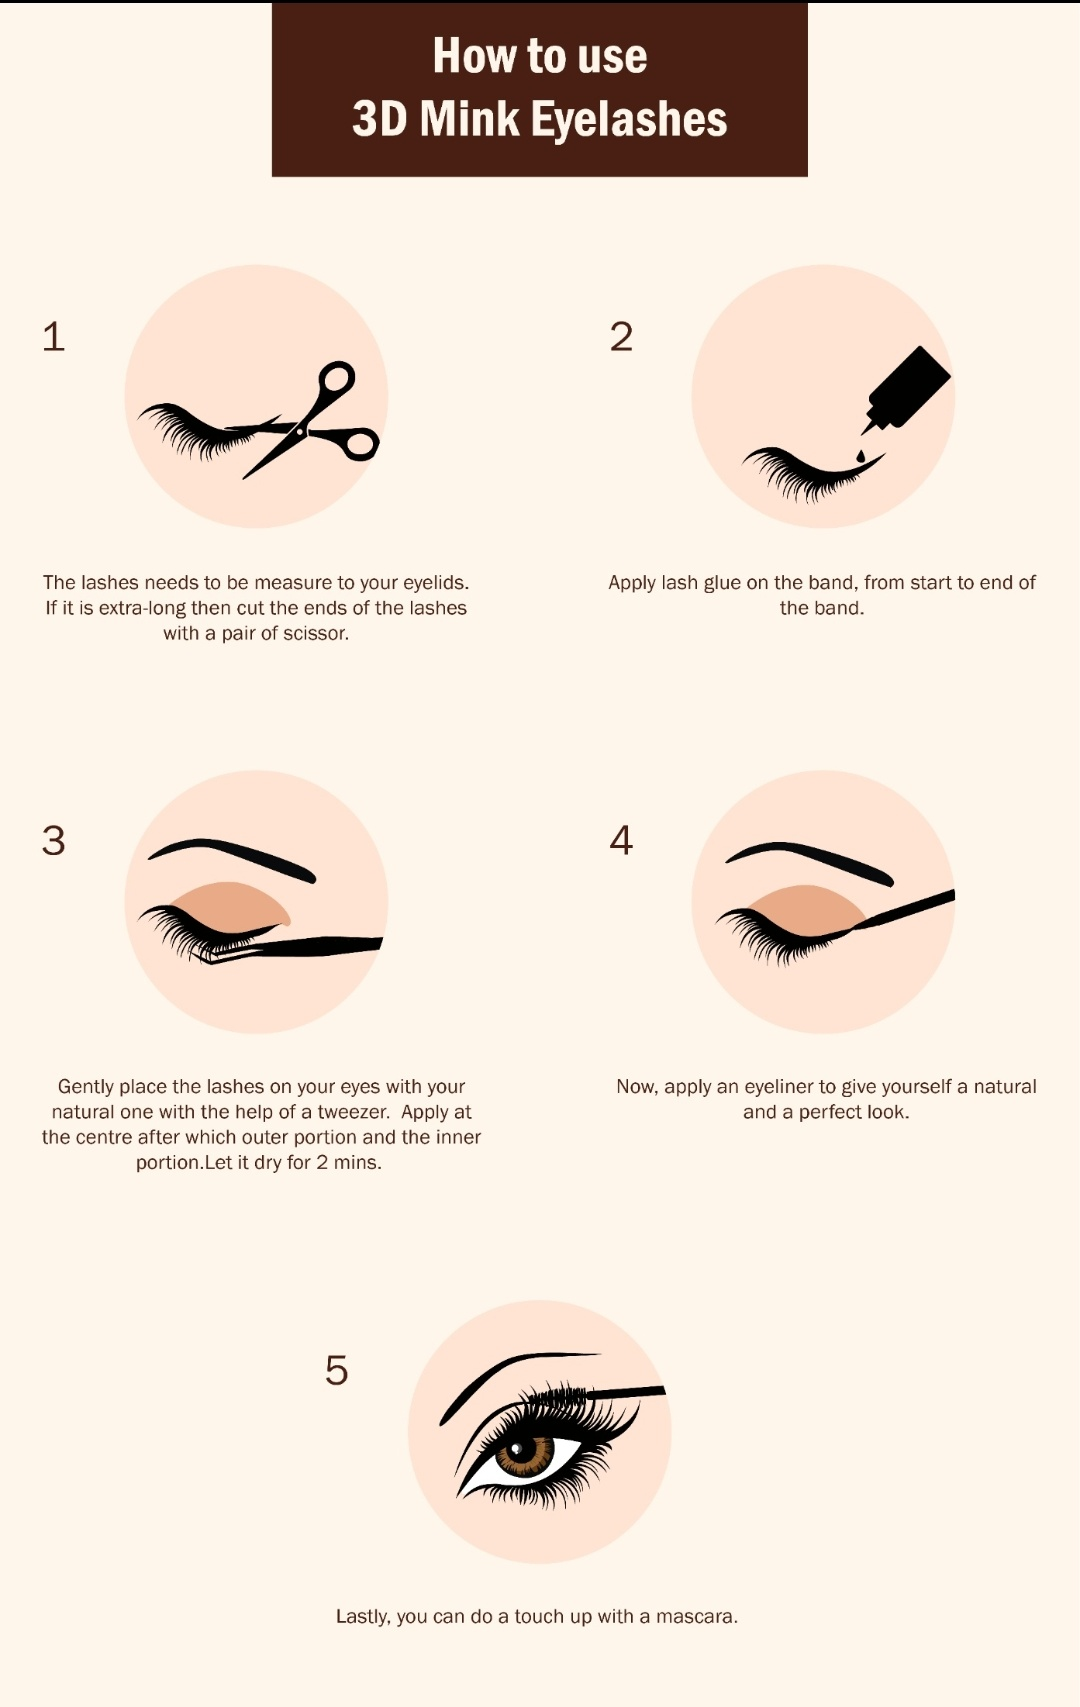 How To Apply 3d Mink Eyelashes